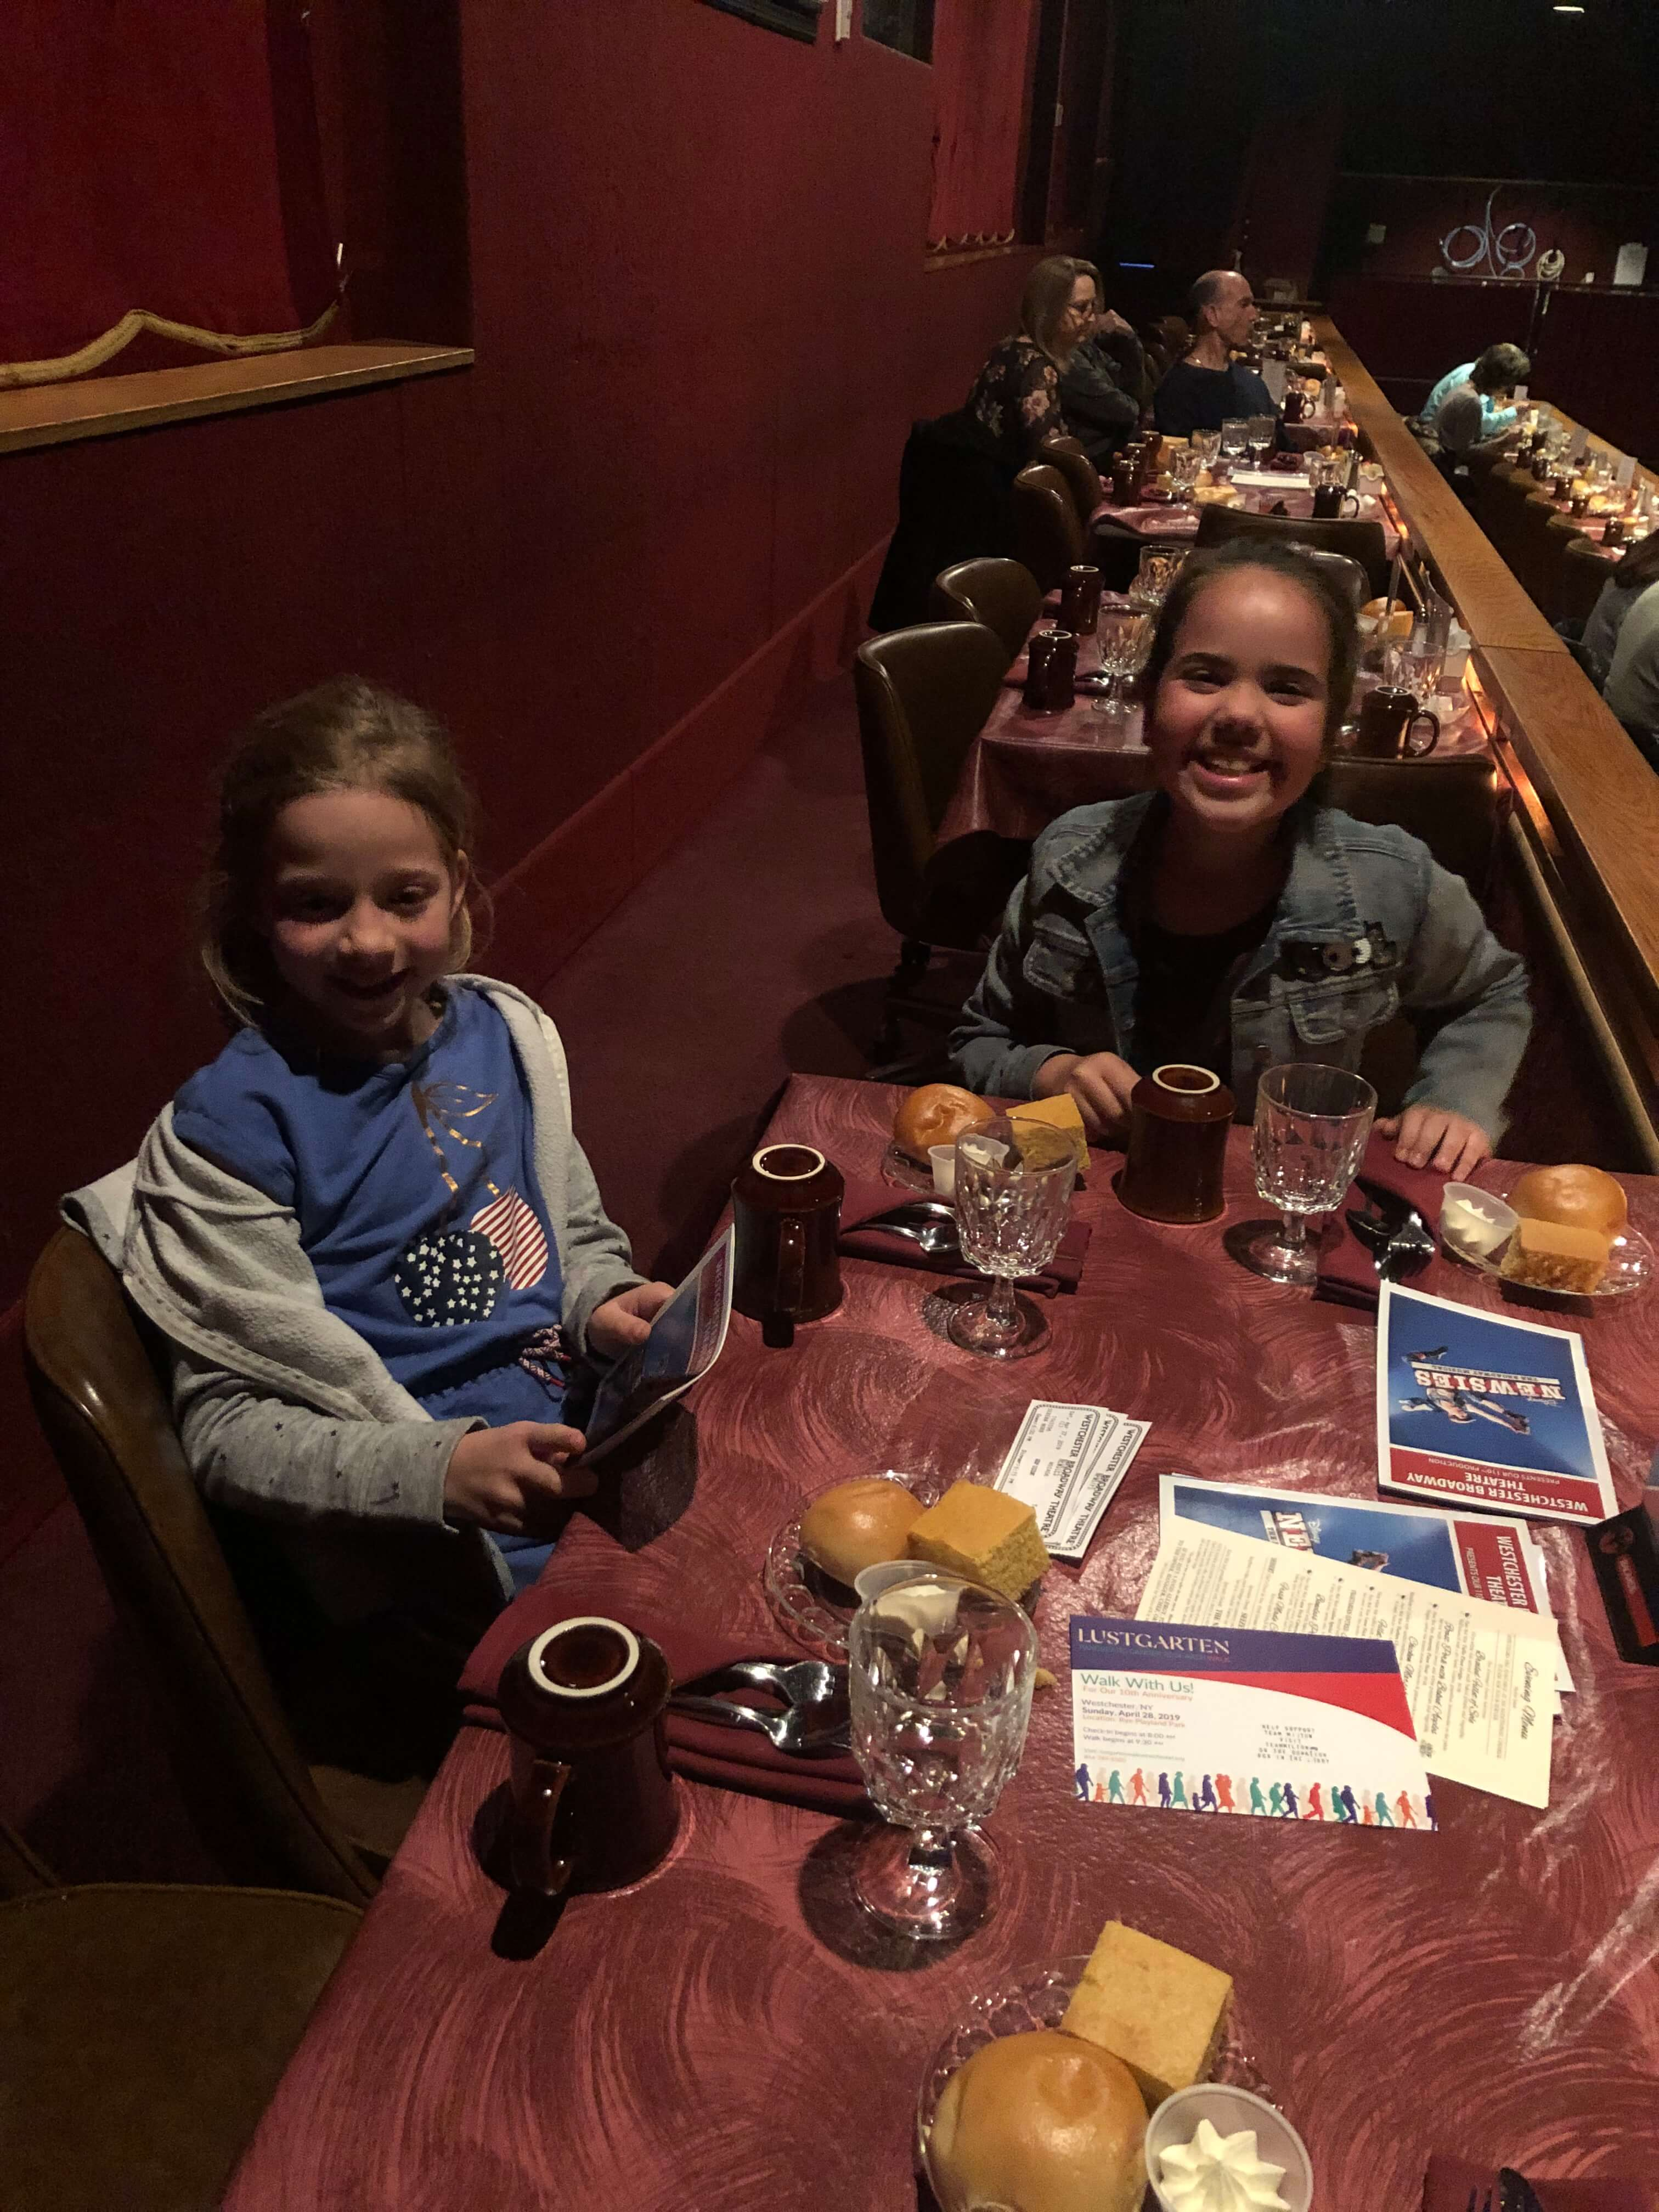 family-fun for all ages at the Westchester Broadway Theatre